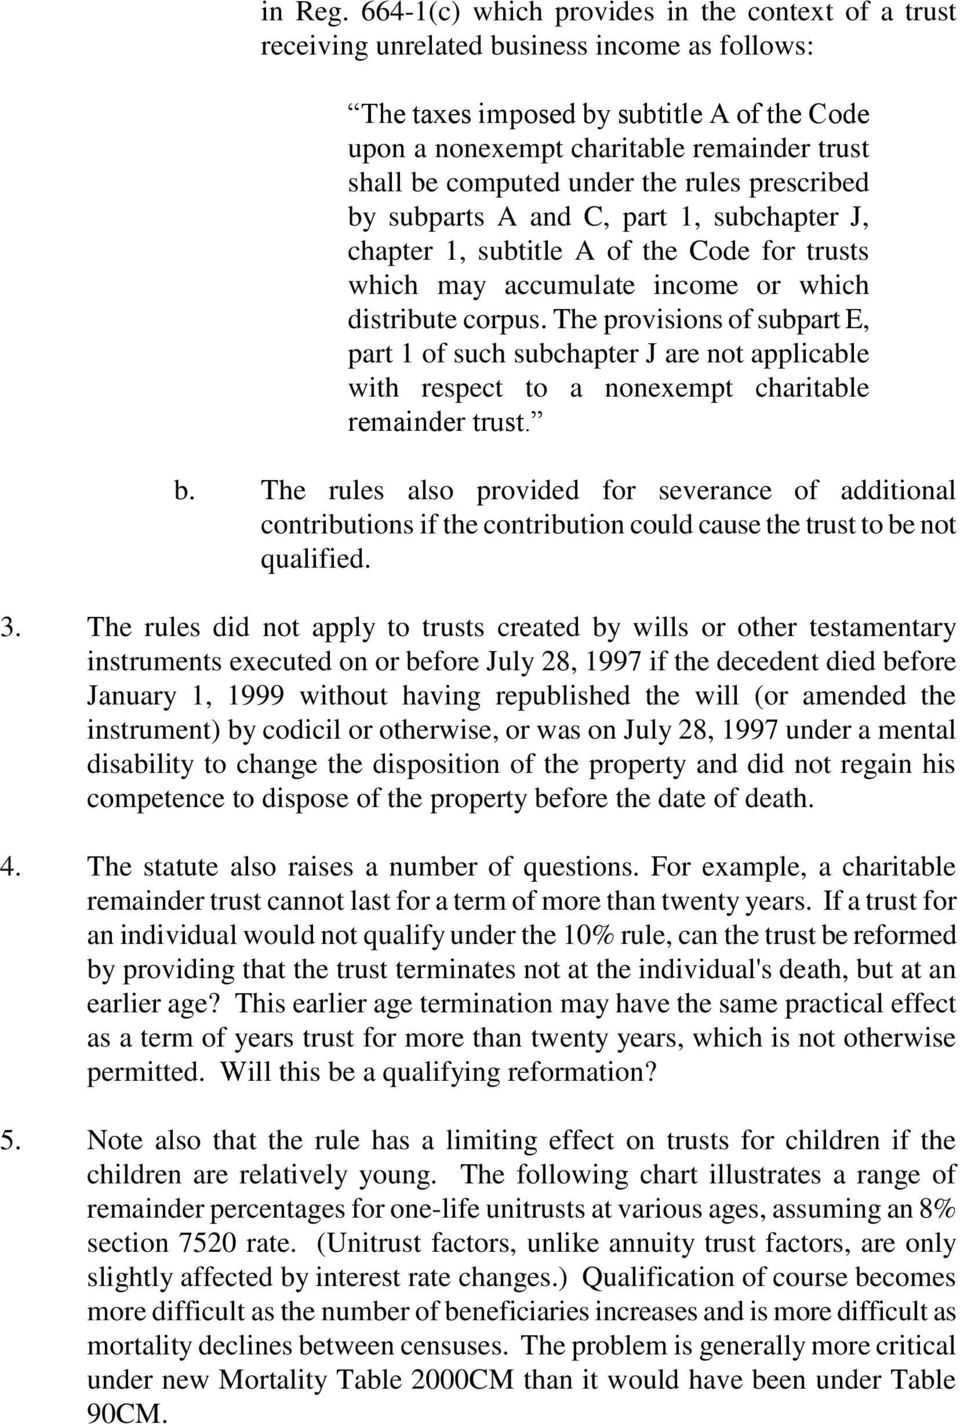 computed under the rules prescribed by subparts A and C, part 1, subchapter J, chapter 1, subtitle A of the Code for trusts which may accumulate income or which distribute corpus.